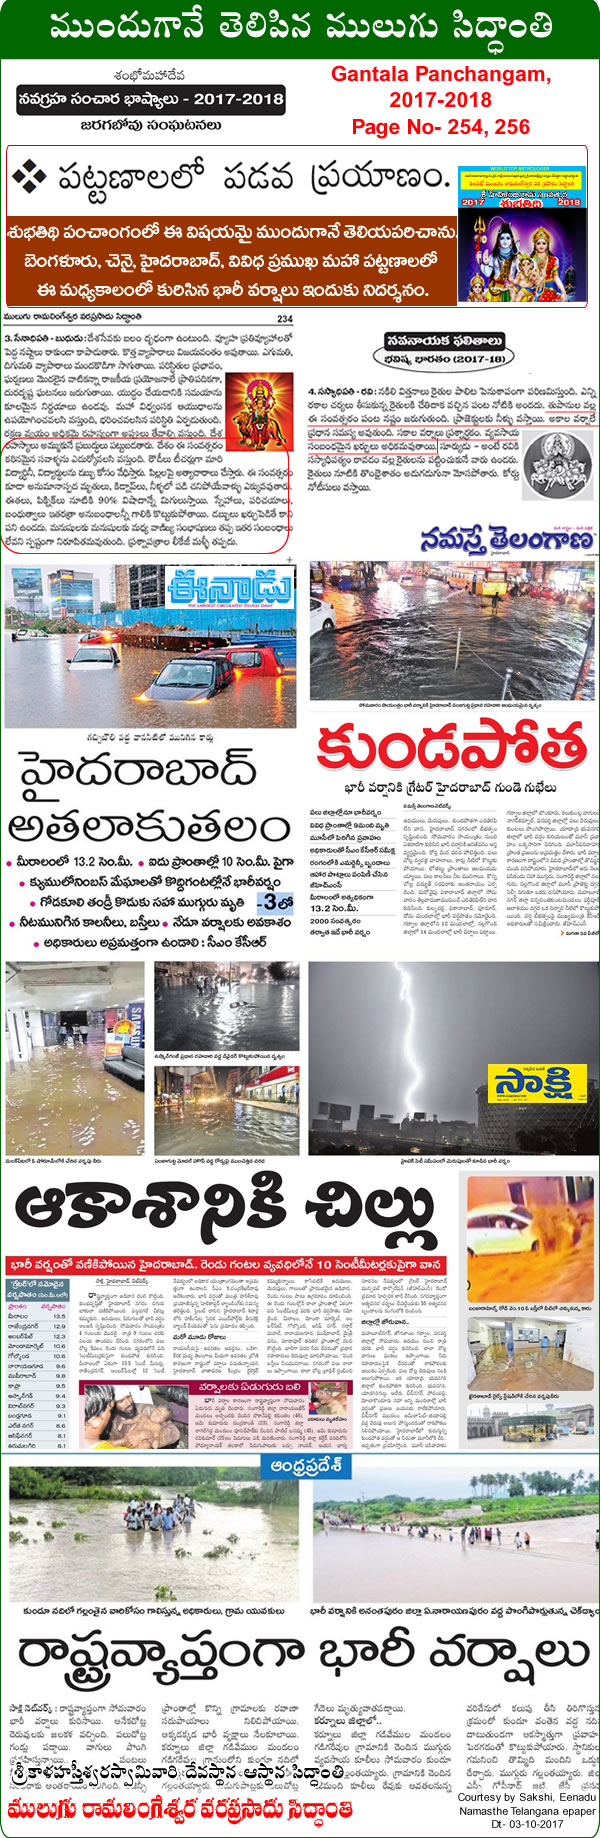 Predicted by Mulugu Ramalingeshwara Varaprasad Siddhant in his Shubhatithi Panchangam 2017-2018- Cloudburst drowns citys -                   Havy-Rain . by Print media sources Sakshi, Eenadu Namasthe Telangana.